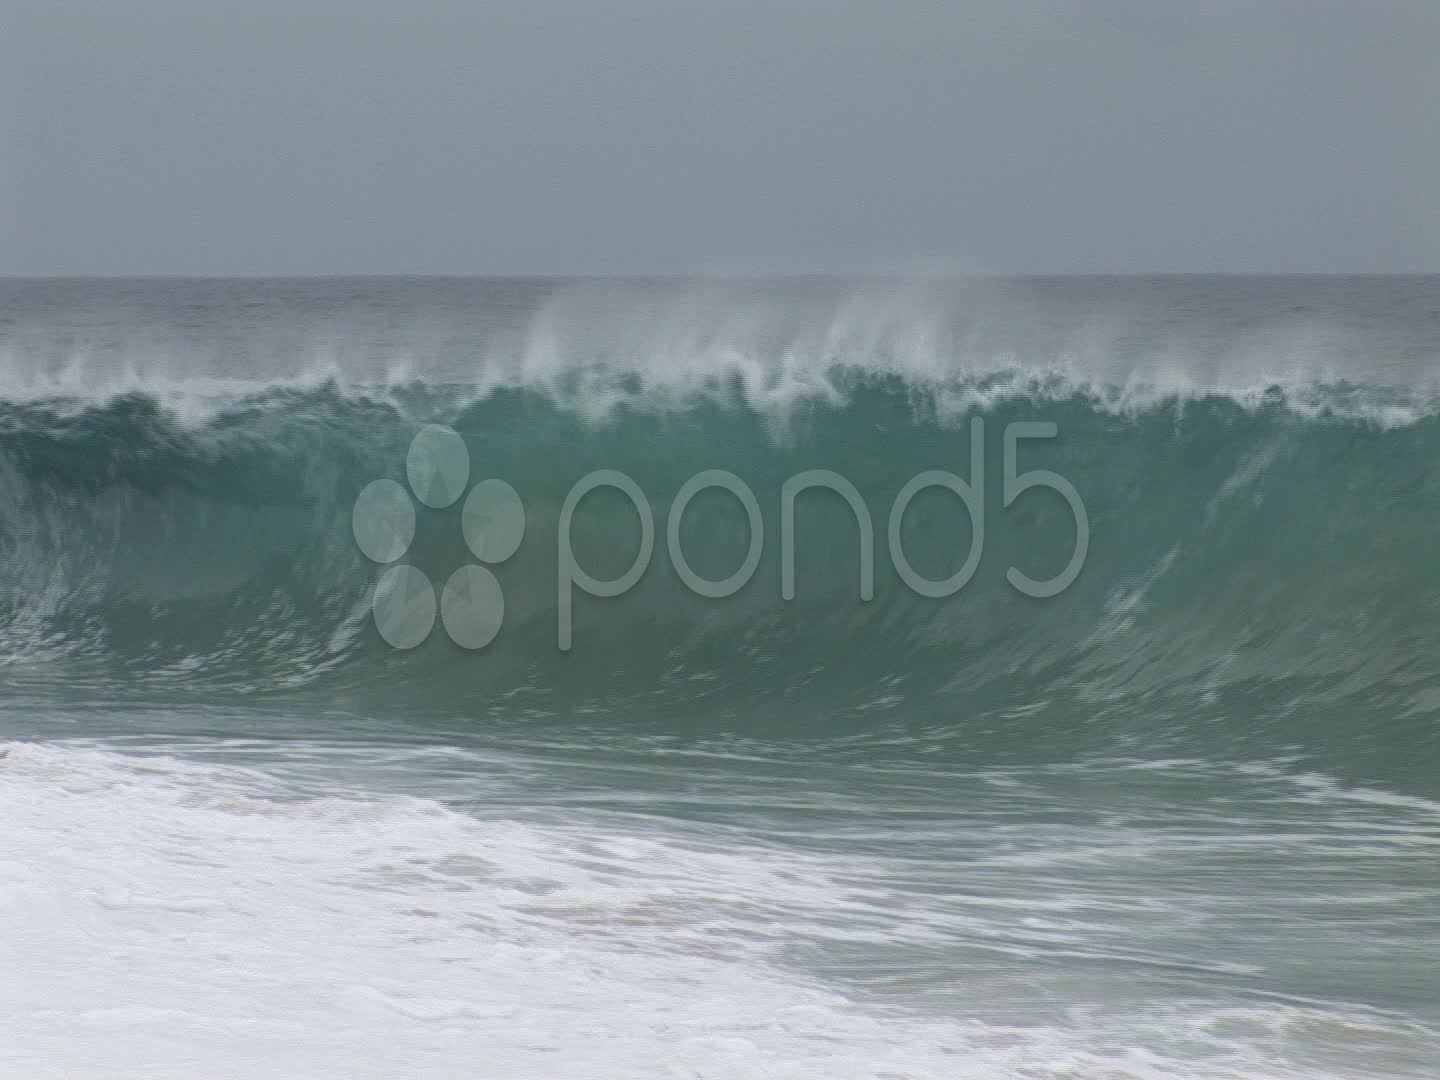 Hurricane Wave Stock Footage Wave Hurricane Footage Stock Waves